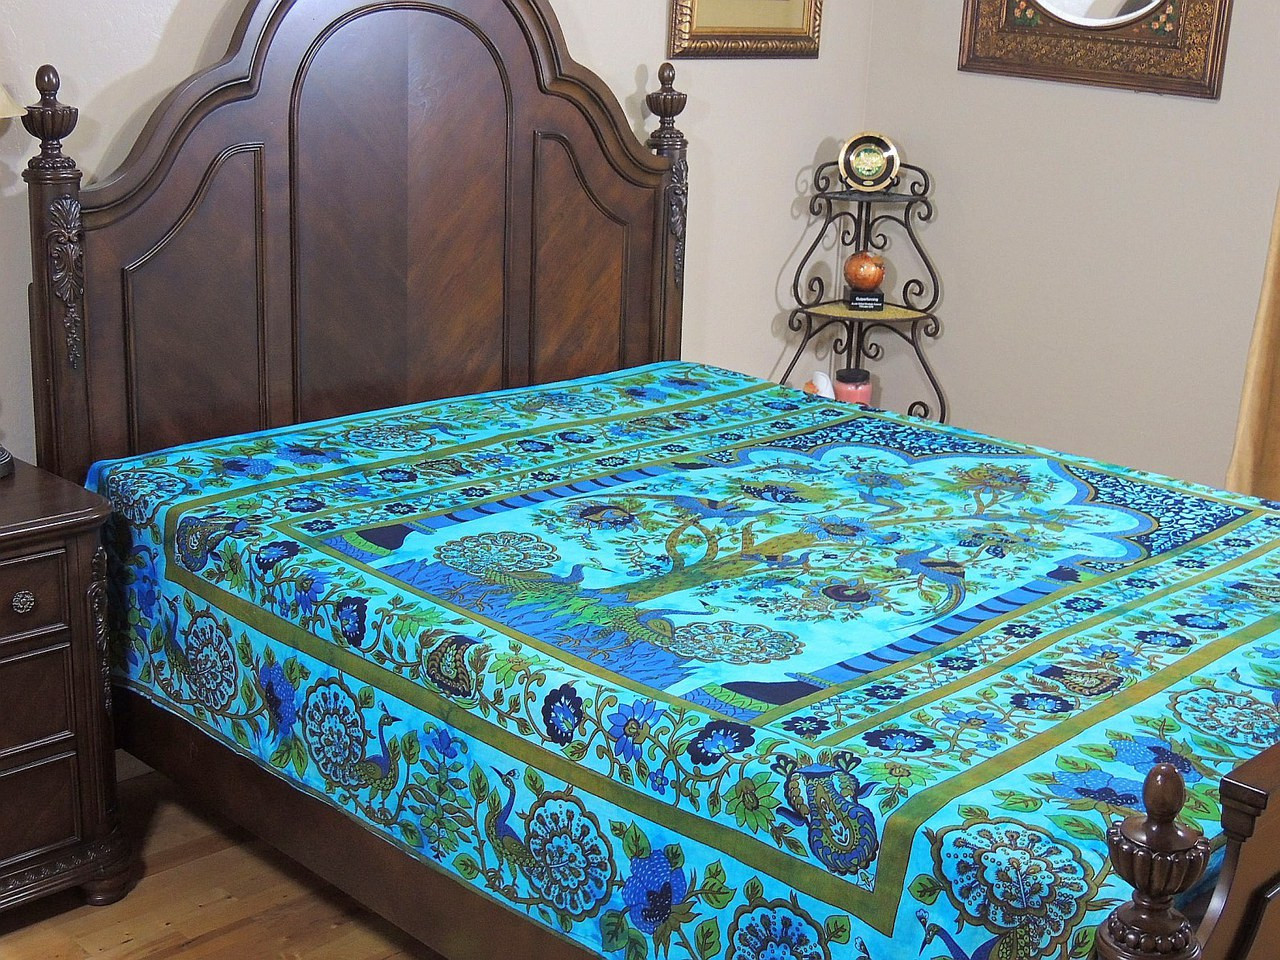 Peacock bedding blue tree of life cotton bohemian full bed sheet novahaat - Peacock bedspreads ...